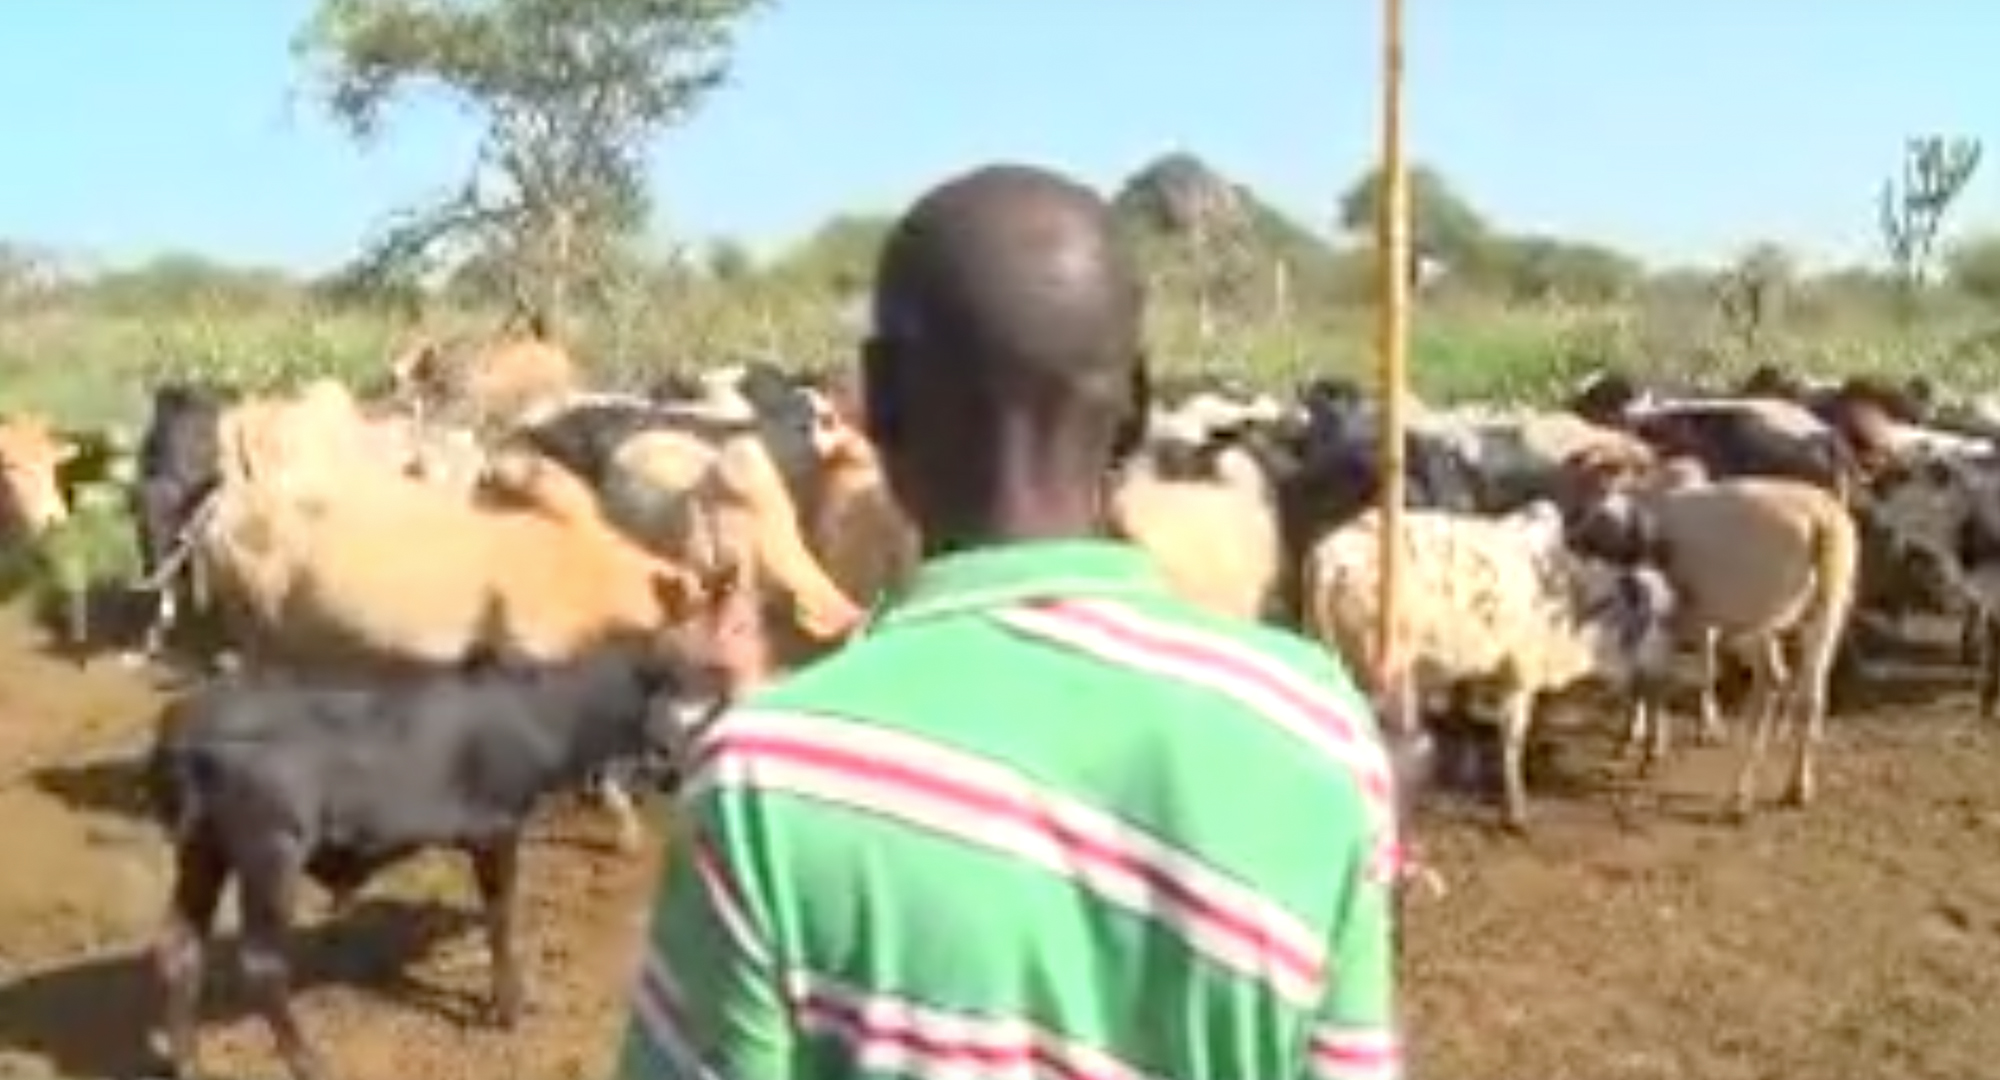 Pastoralism, Our Food Security Pillar